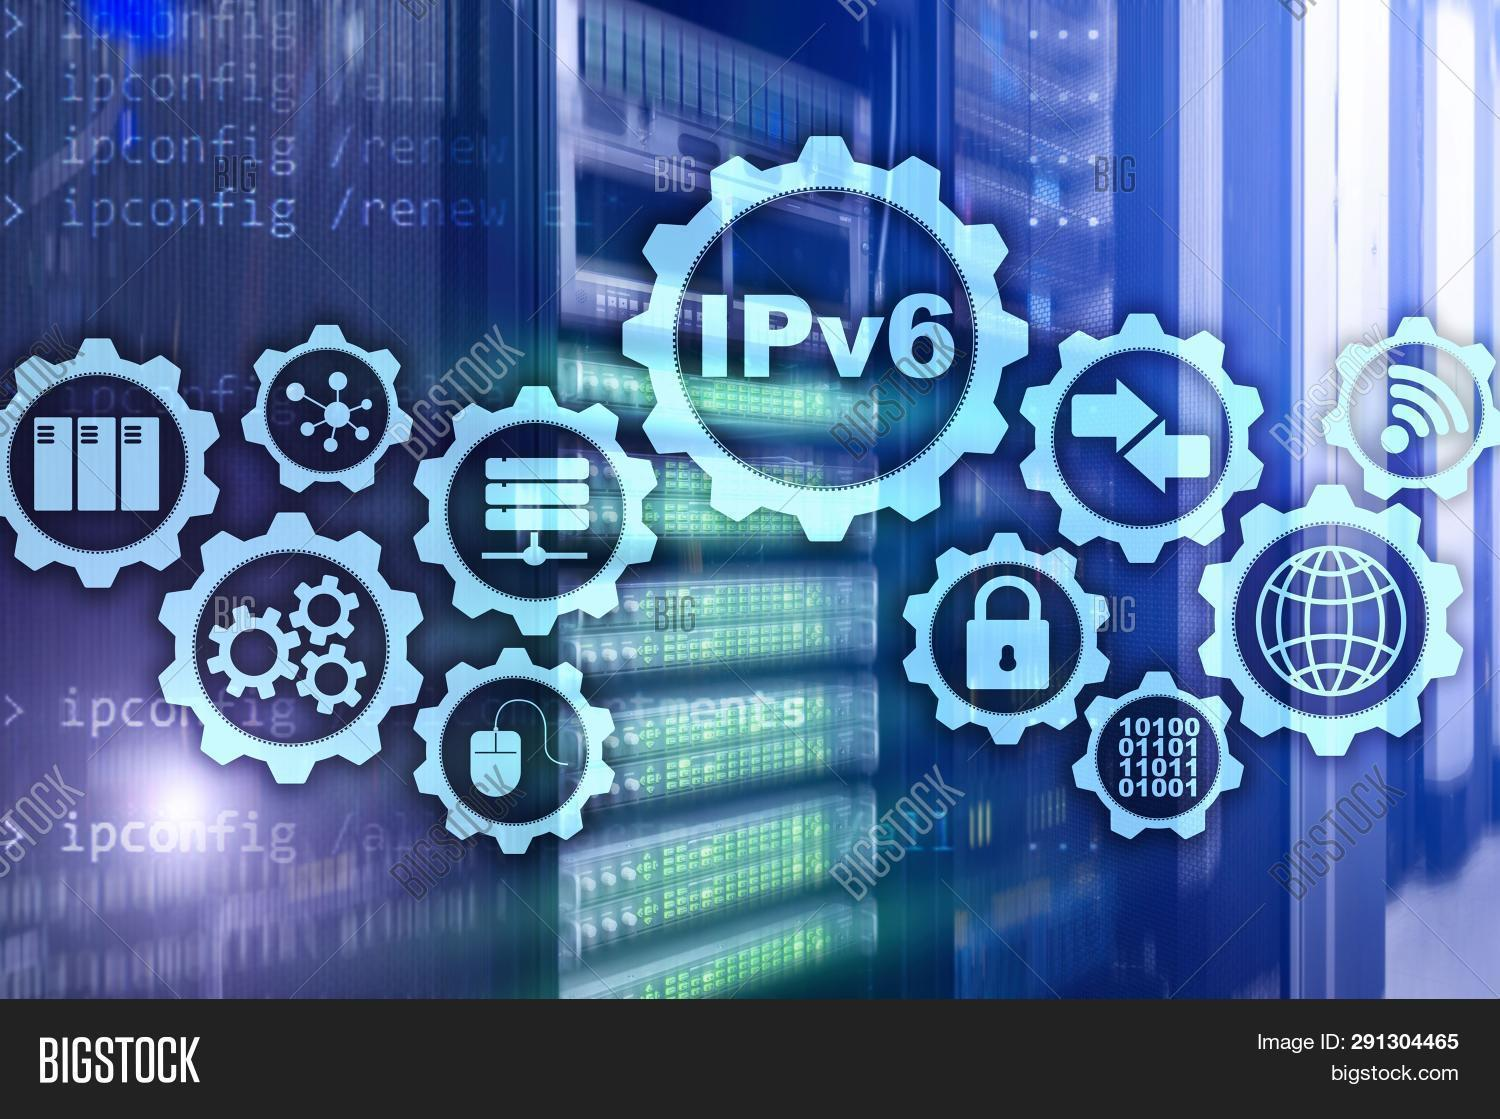 Ipv6 Internet Protocol On Server Room Background. Business Technology Internet And Network Concept